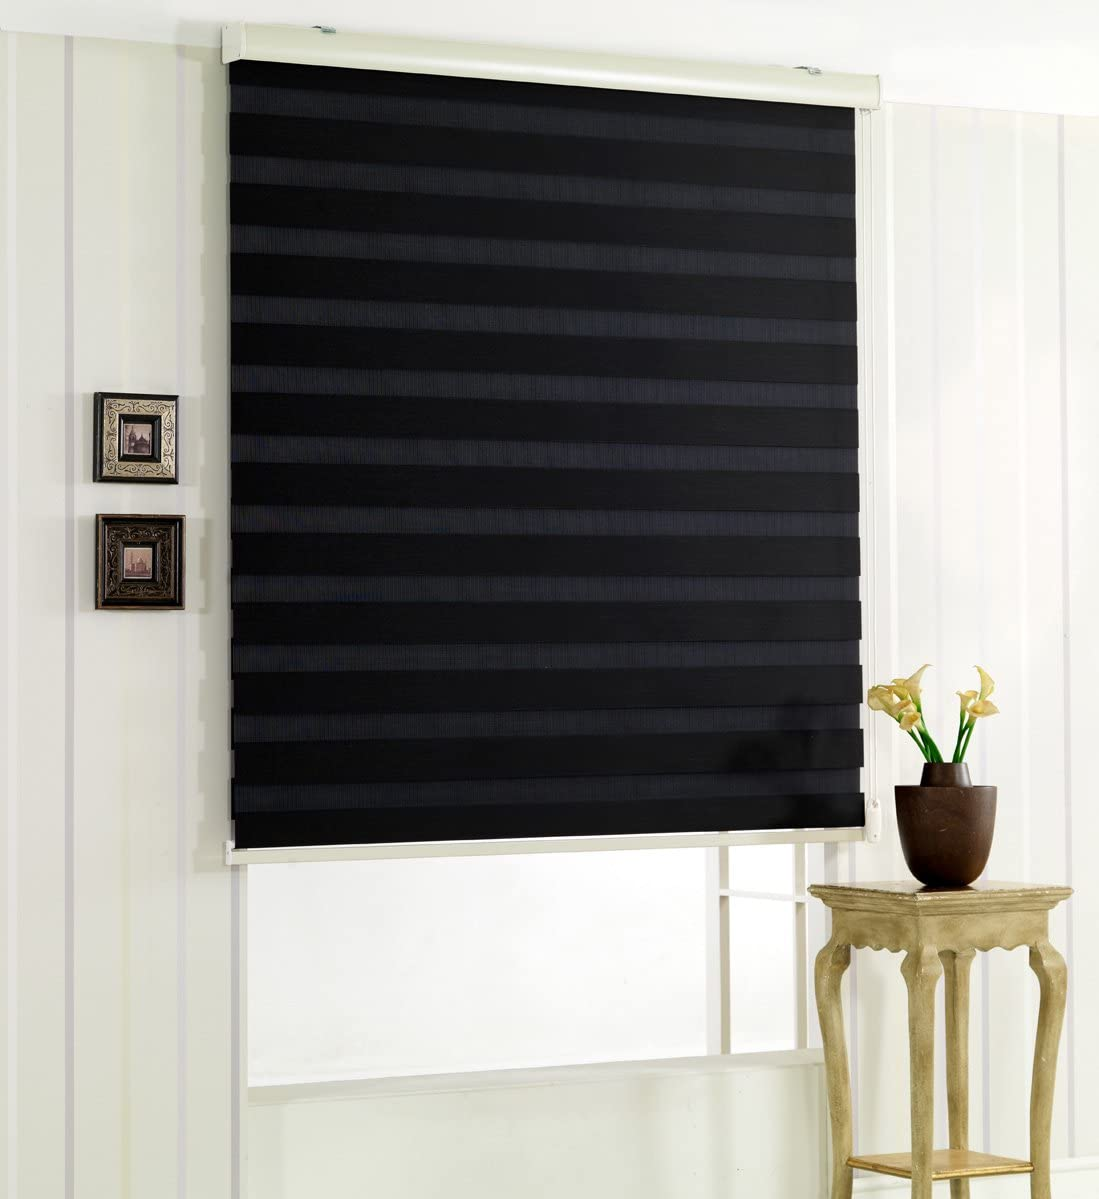 Foiresoft Custom Cut to Size, Winsharp Woodlook, Black, W 91 x H 47 Inch Horizontal Window Shade Blind Zebra Dual Roller Blinds Treatments, Maximum 91 Inch Wide by 103 Inch Long